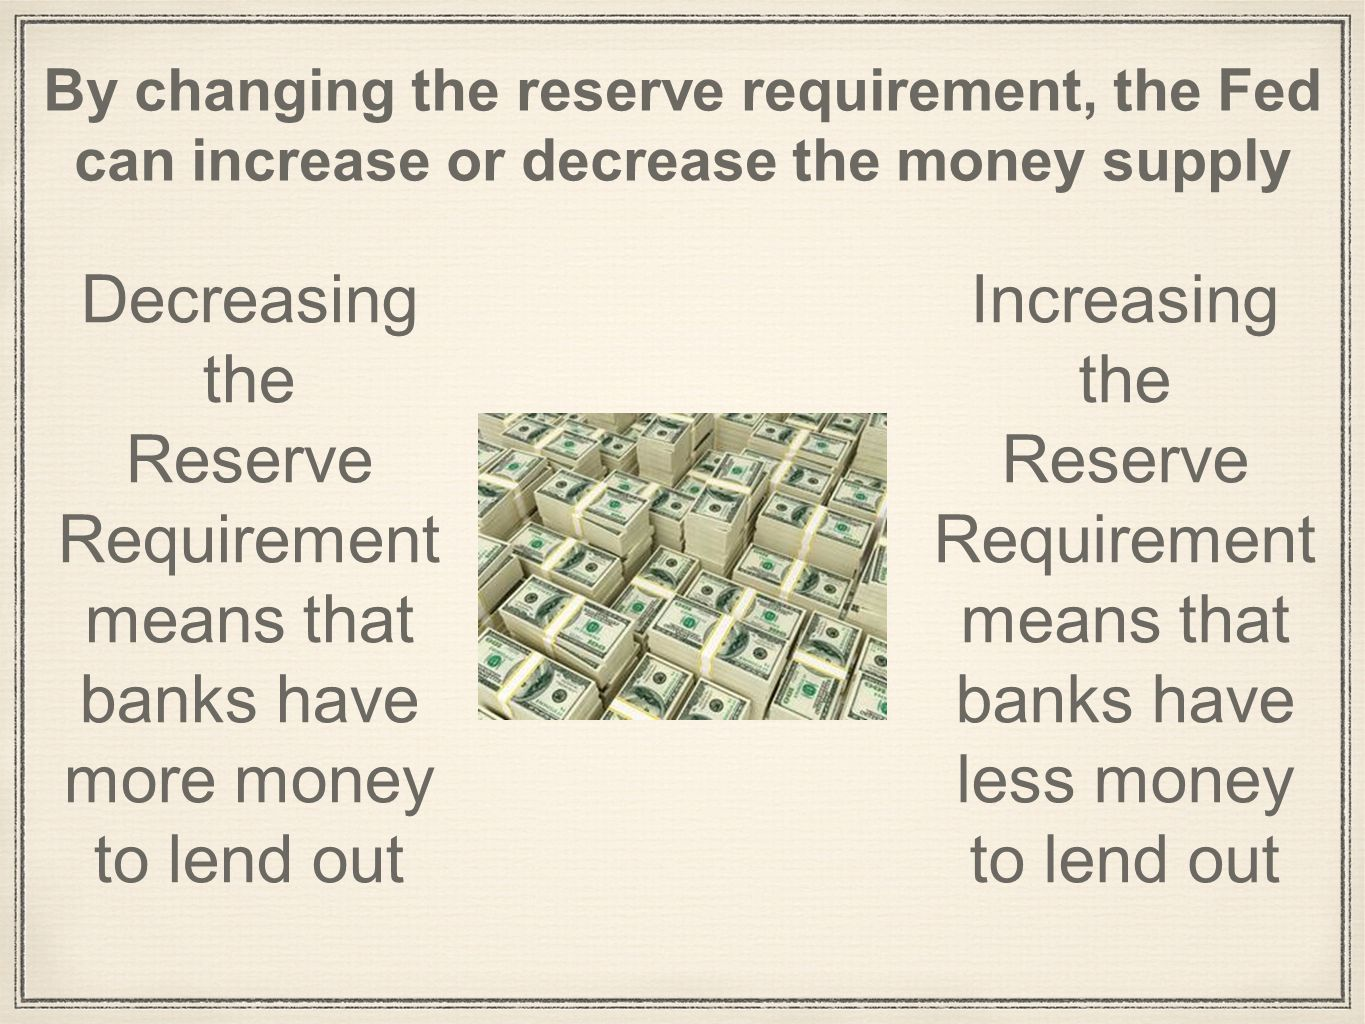 By changing the reserve requirement, the Fed can increase or decrease the money supply Decreasing the Reserve Requirement means that banks have more money to lend out Increasing the Reserve Requirement means that banks have less money to lend out